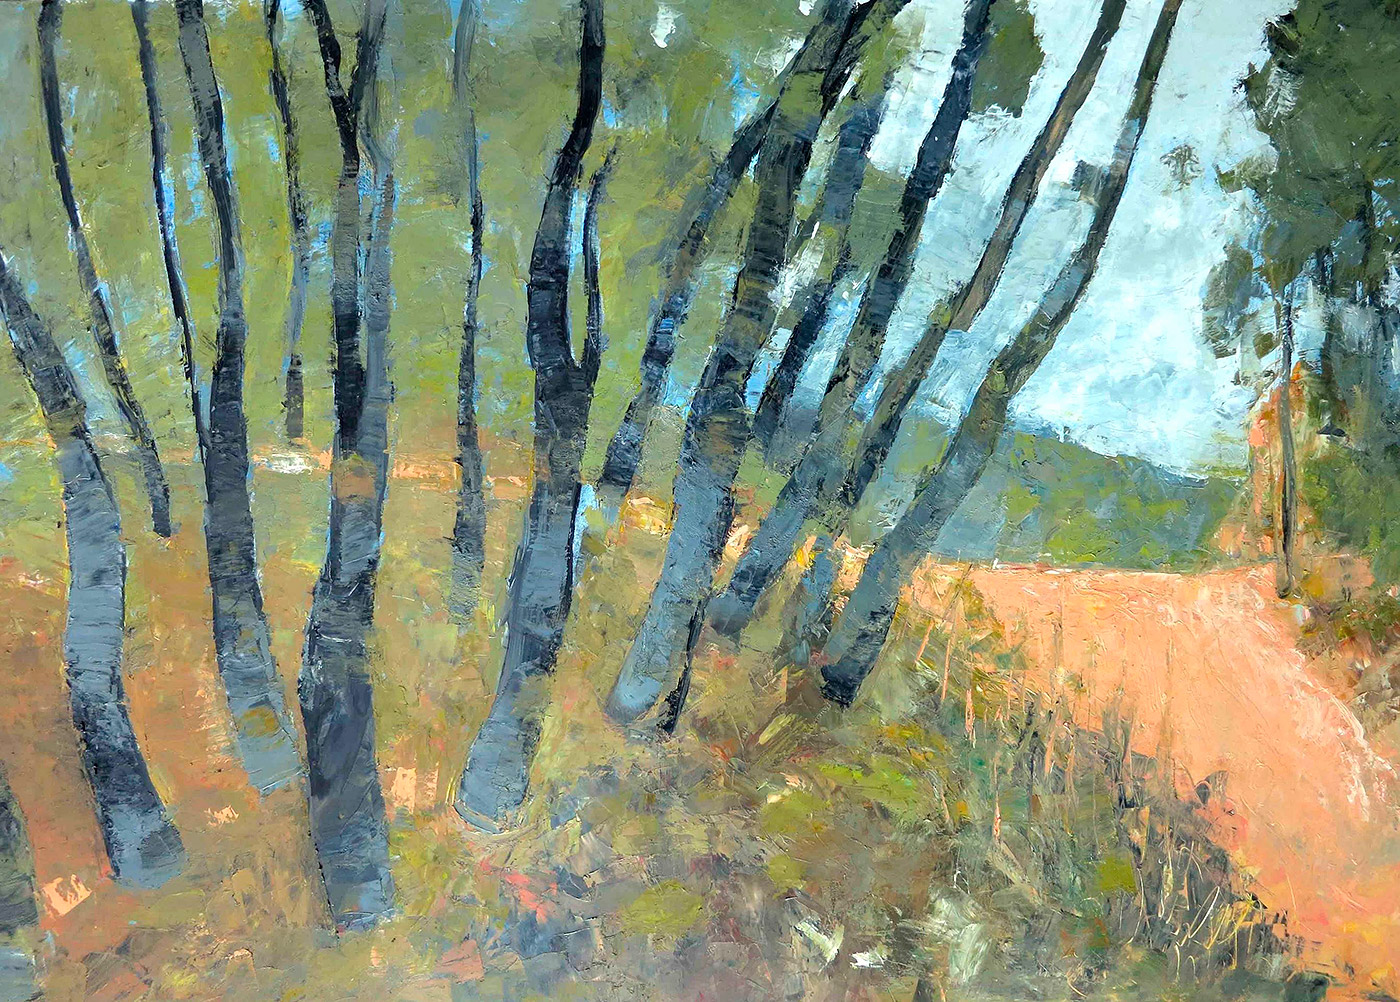 John Graham - 'You Yangs Landscape Number III'